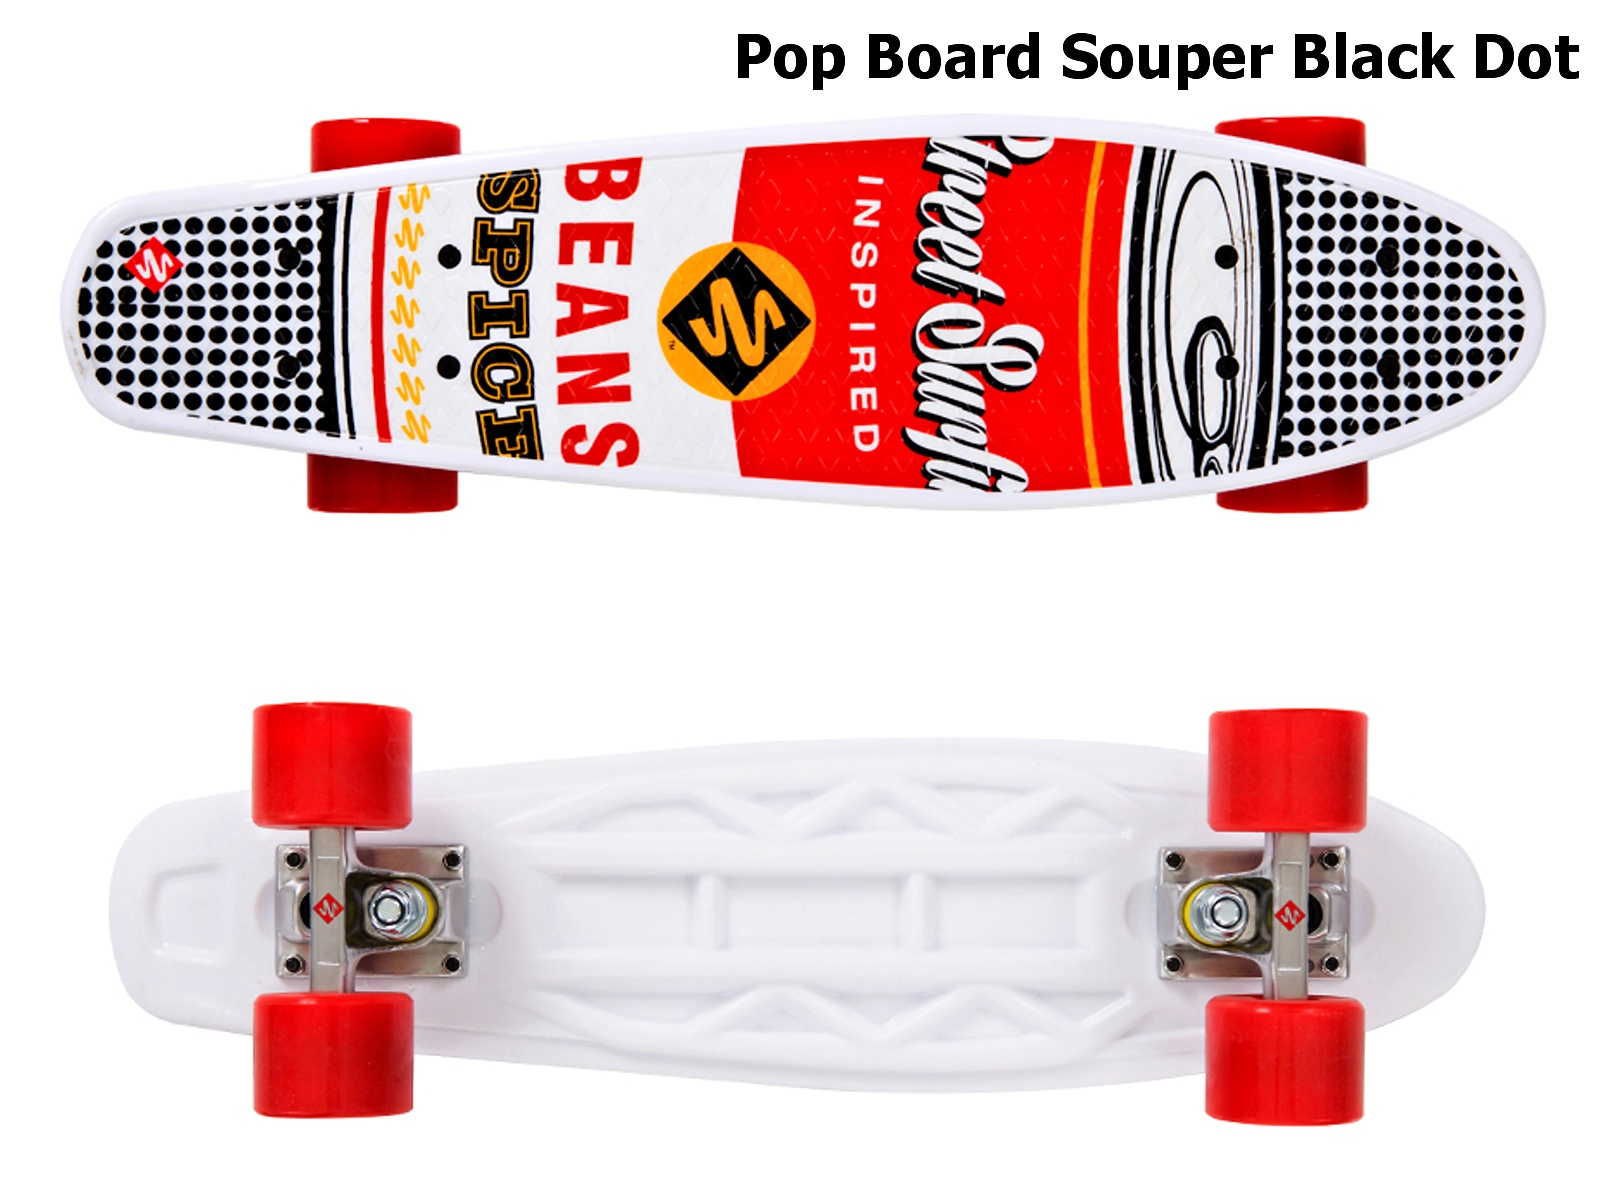 Skateboard STREET SURFING Pop Board Souper Black Dot